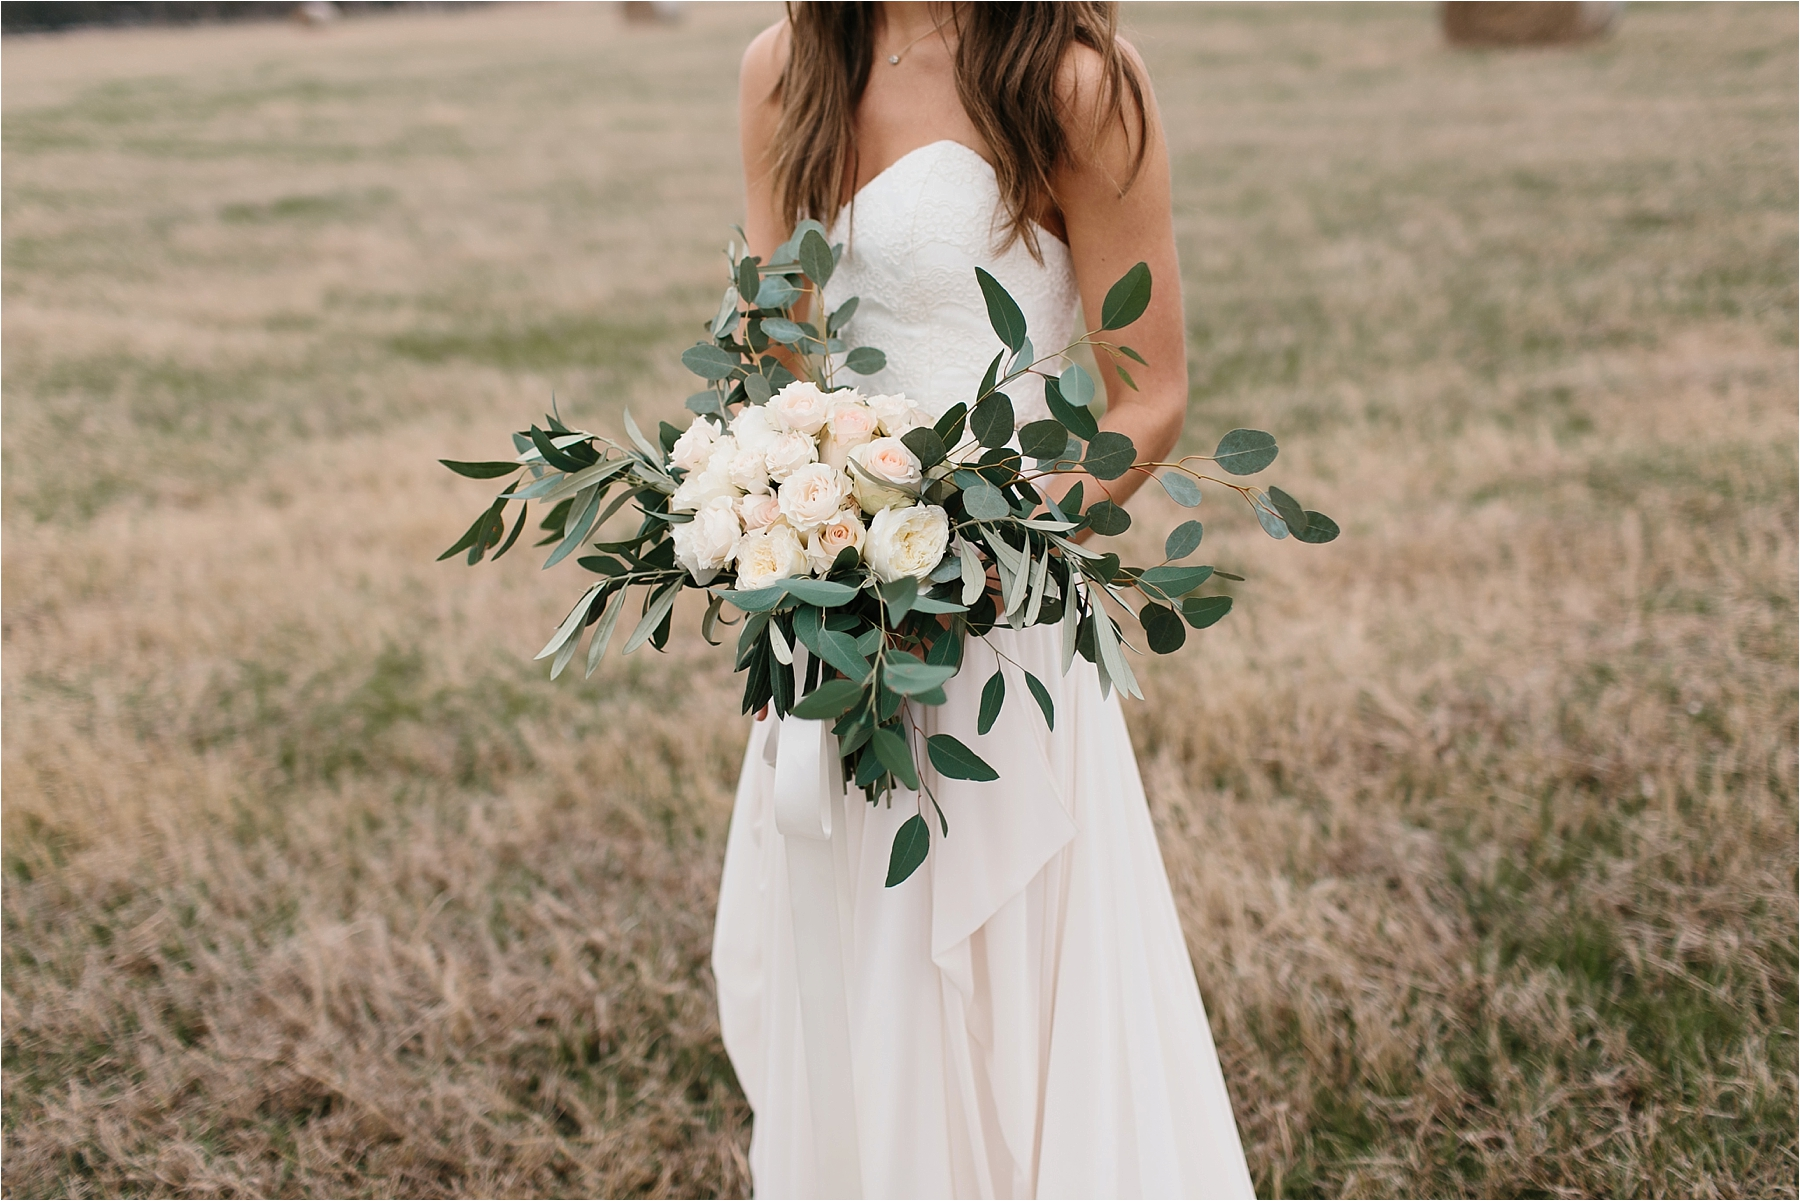 Lauren + Matt __ an intimate, emotional, blush pink, navy blue, and greenery toned wedding accents at the Brooks at Weatherford by North Texas Wedding Photographer Rachel Meagan Photography086